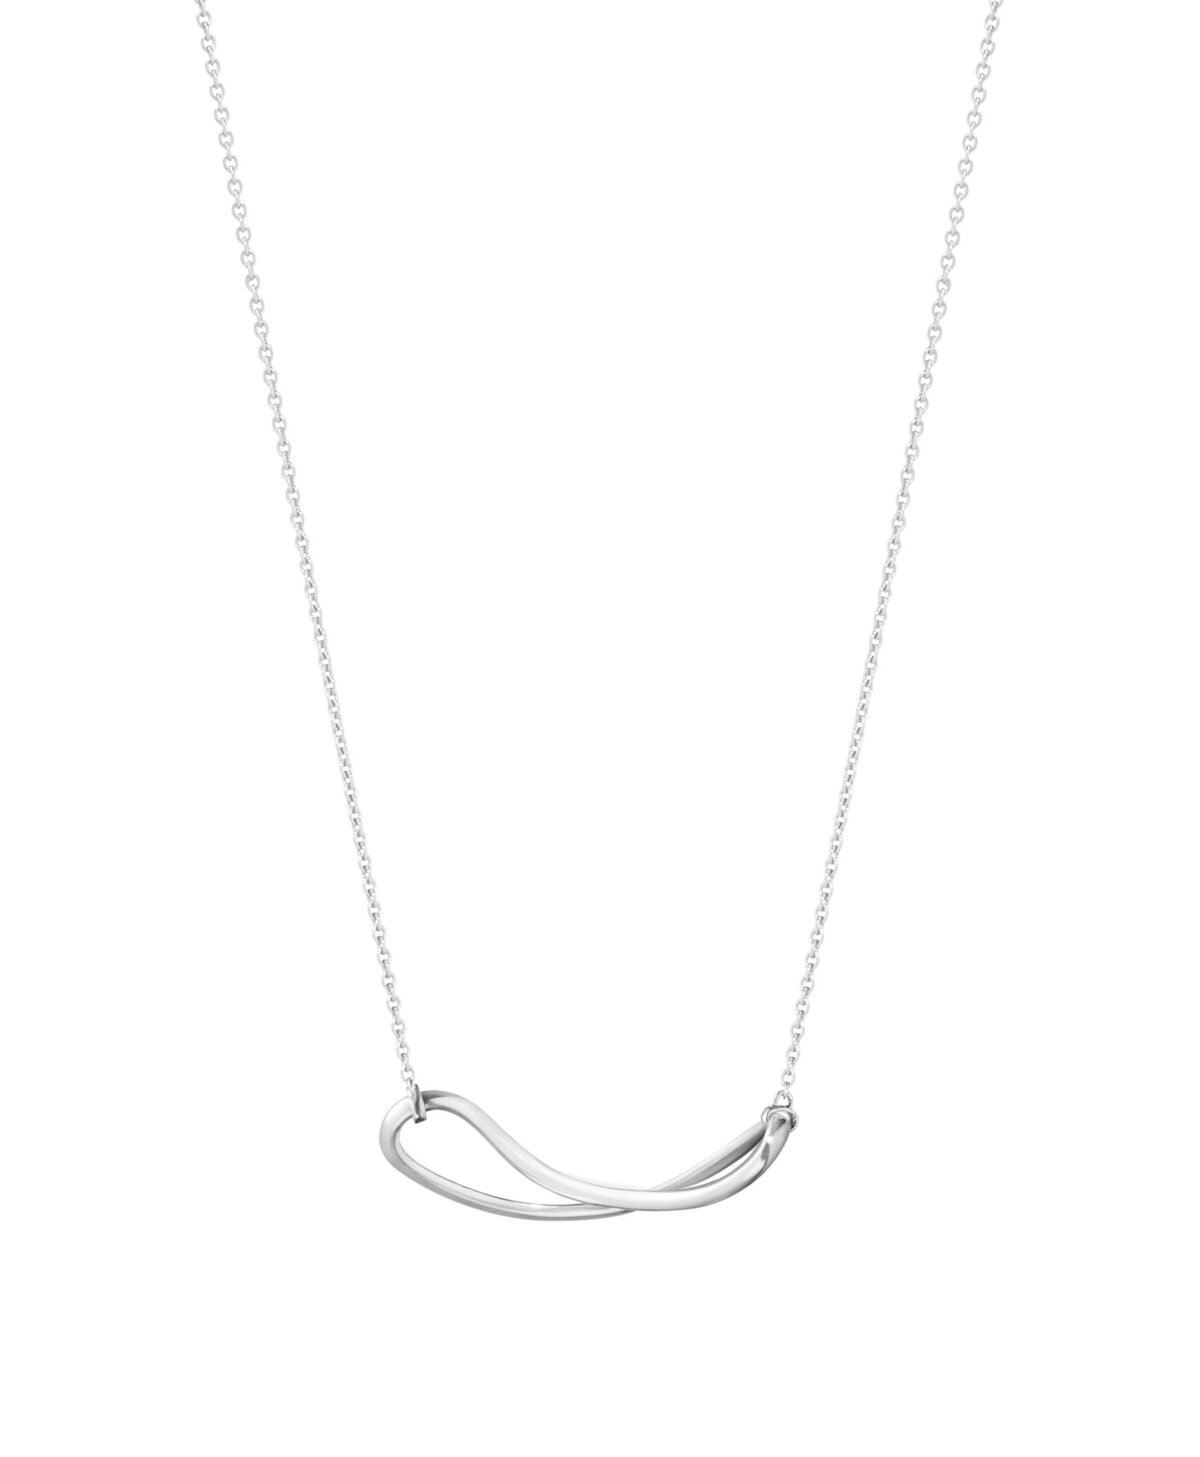 product/1/0/10013675_infinity_pendant_452f_silver_jpg_max_3000x3000_444310.jpg